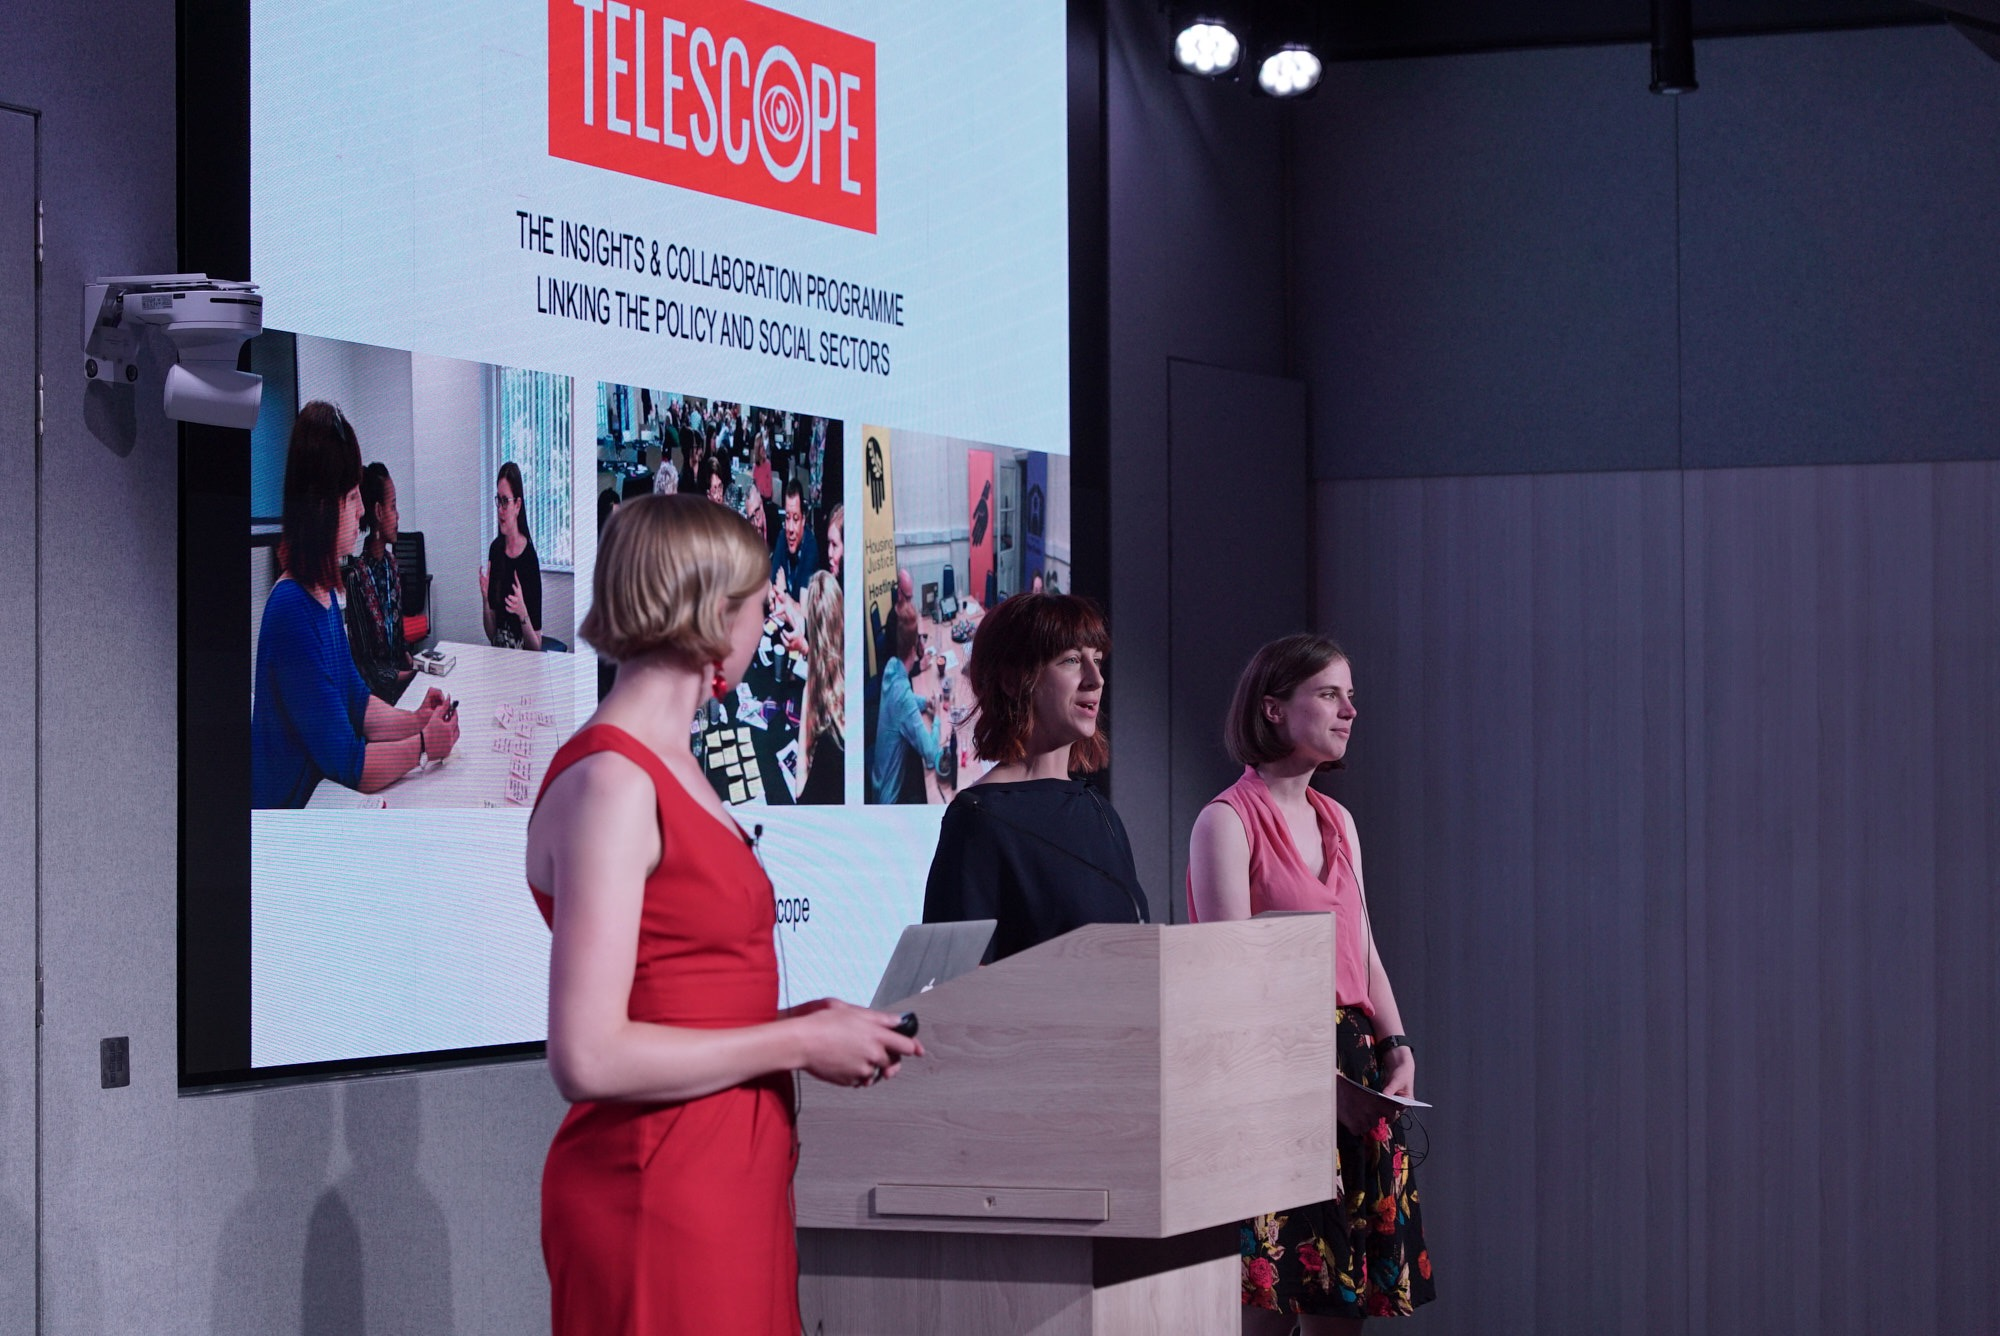 Pitch by Sarah Holliday, Ruth Martin and Hebe Foster at Telescope